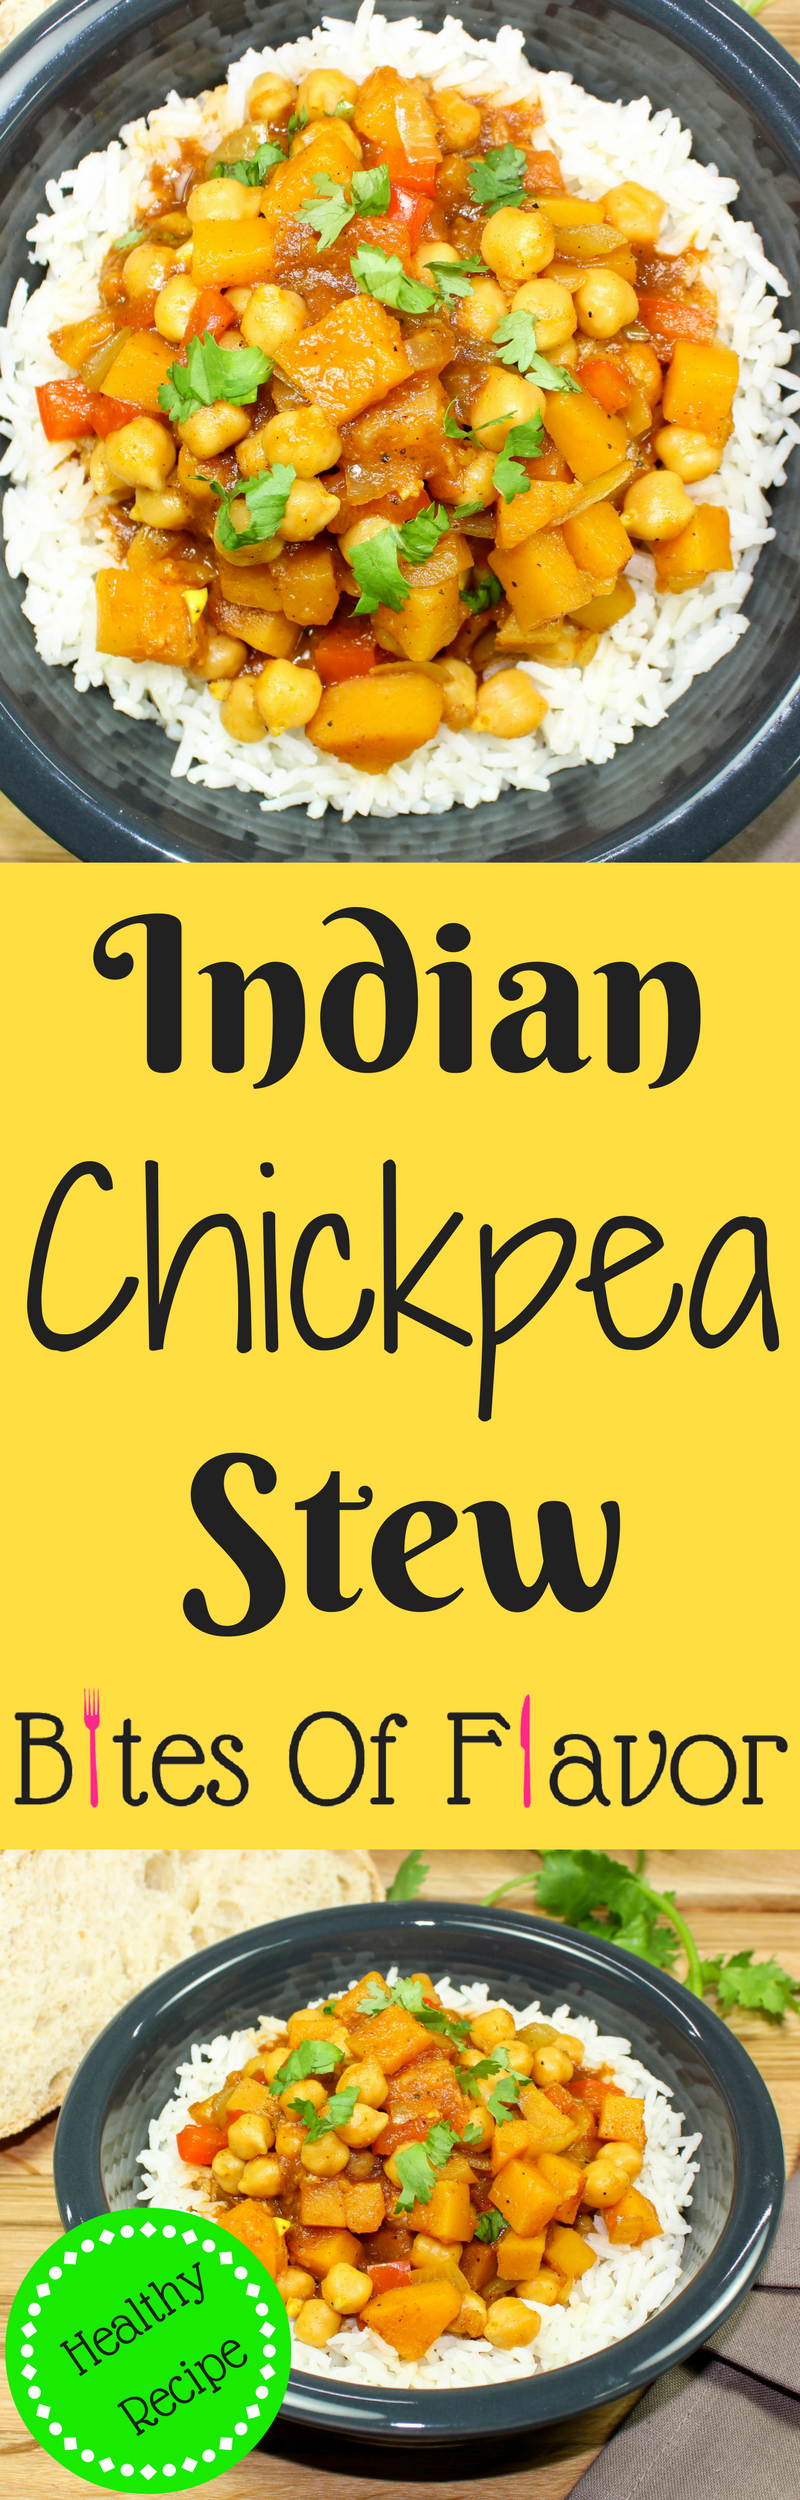 Indian Chickpea Stew is a unique twist on vegetable stew! Delicious Indian spices mixed with hearty vegetables is comfort in a bowl. Great for anyone who is a beginner to Indian food! Spices are sweet with just a hint of spice. Weight Watchers friendly recipe! www.bitesofflavor.com